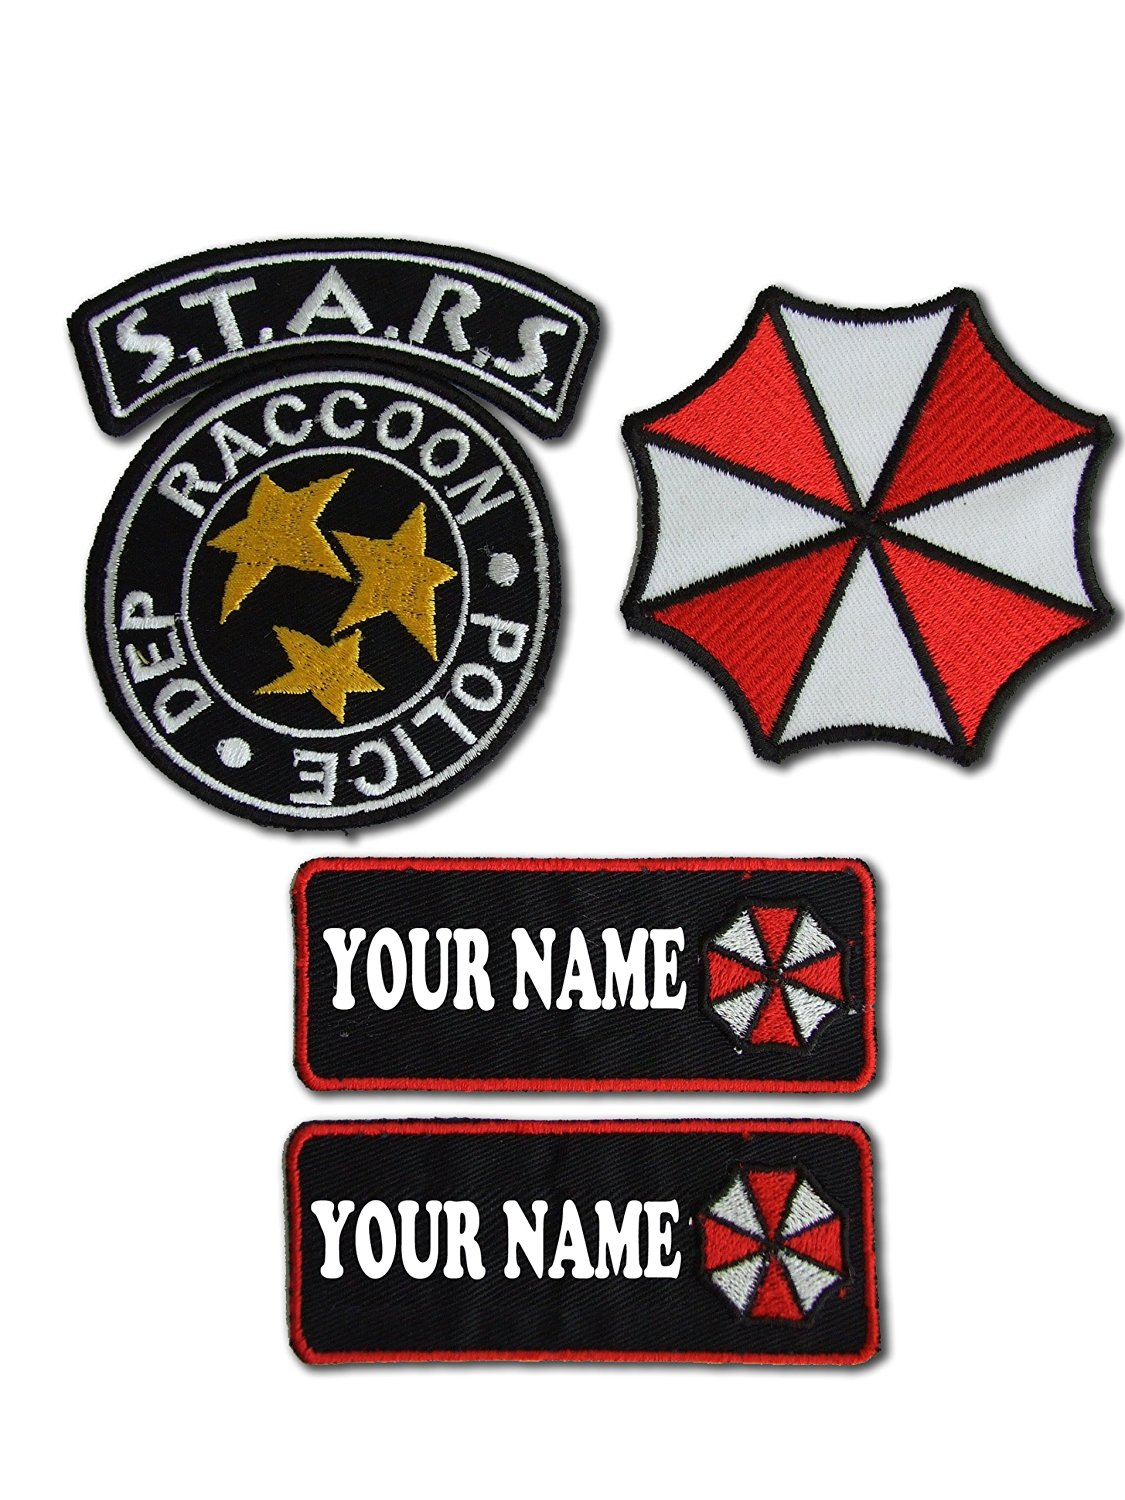 Stickerzzz!!! Black Resident Evil S.T.A.R.S Raccoon City Police Name Tag Set 4 Iron On Patches Black